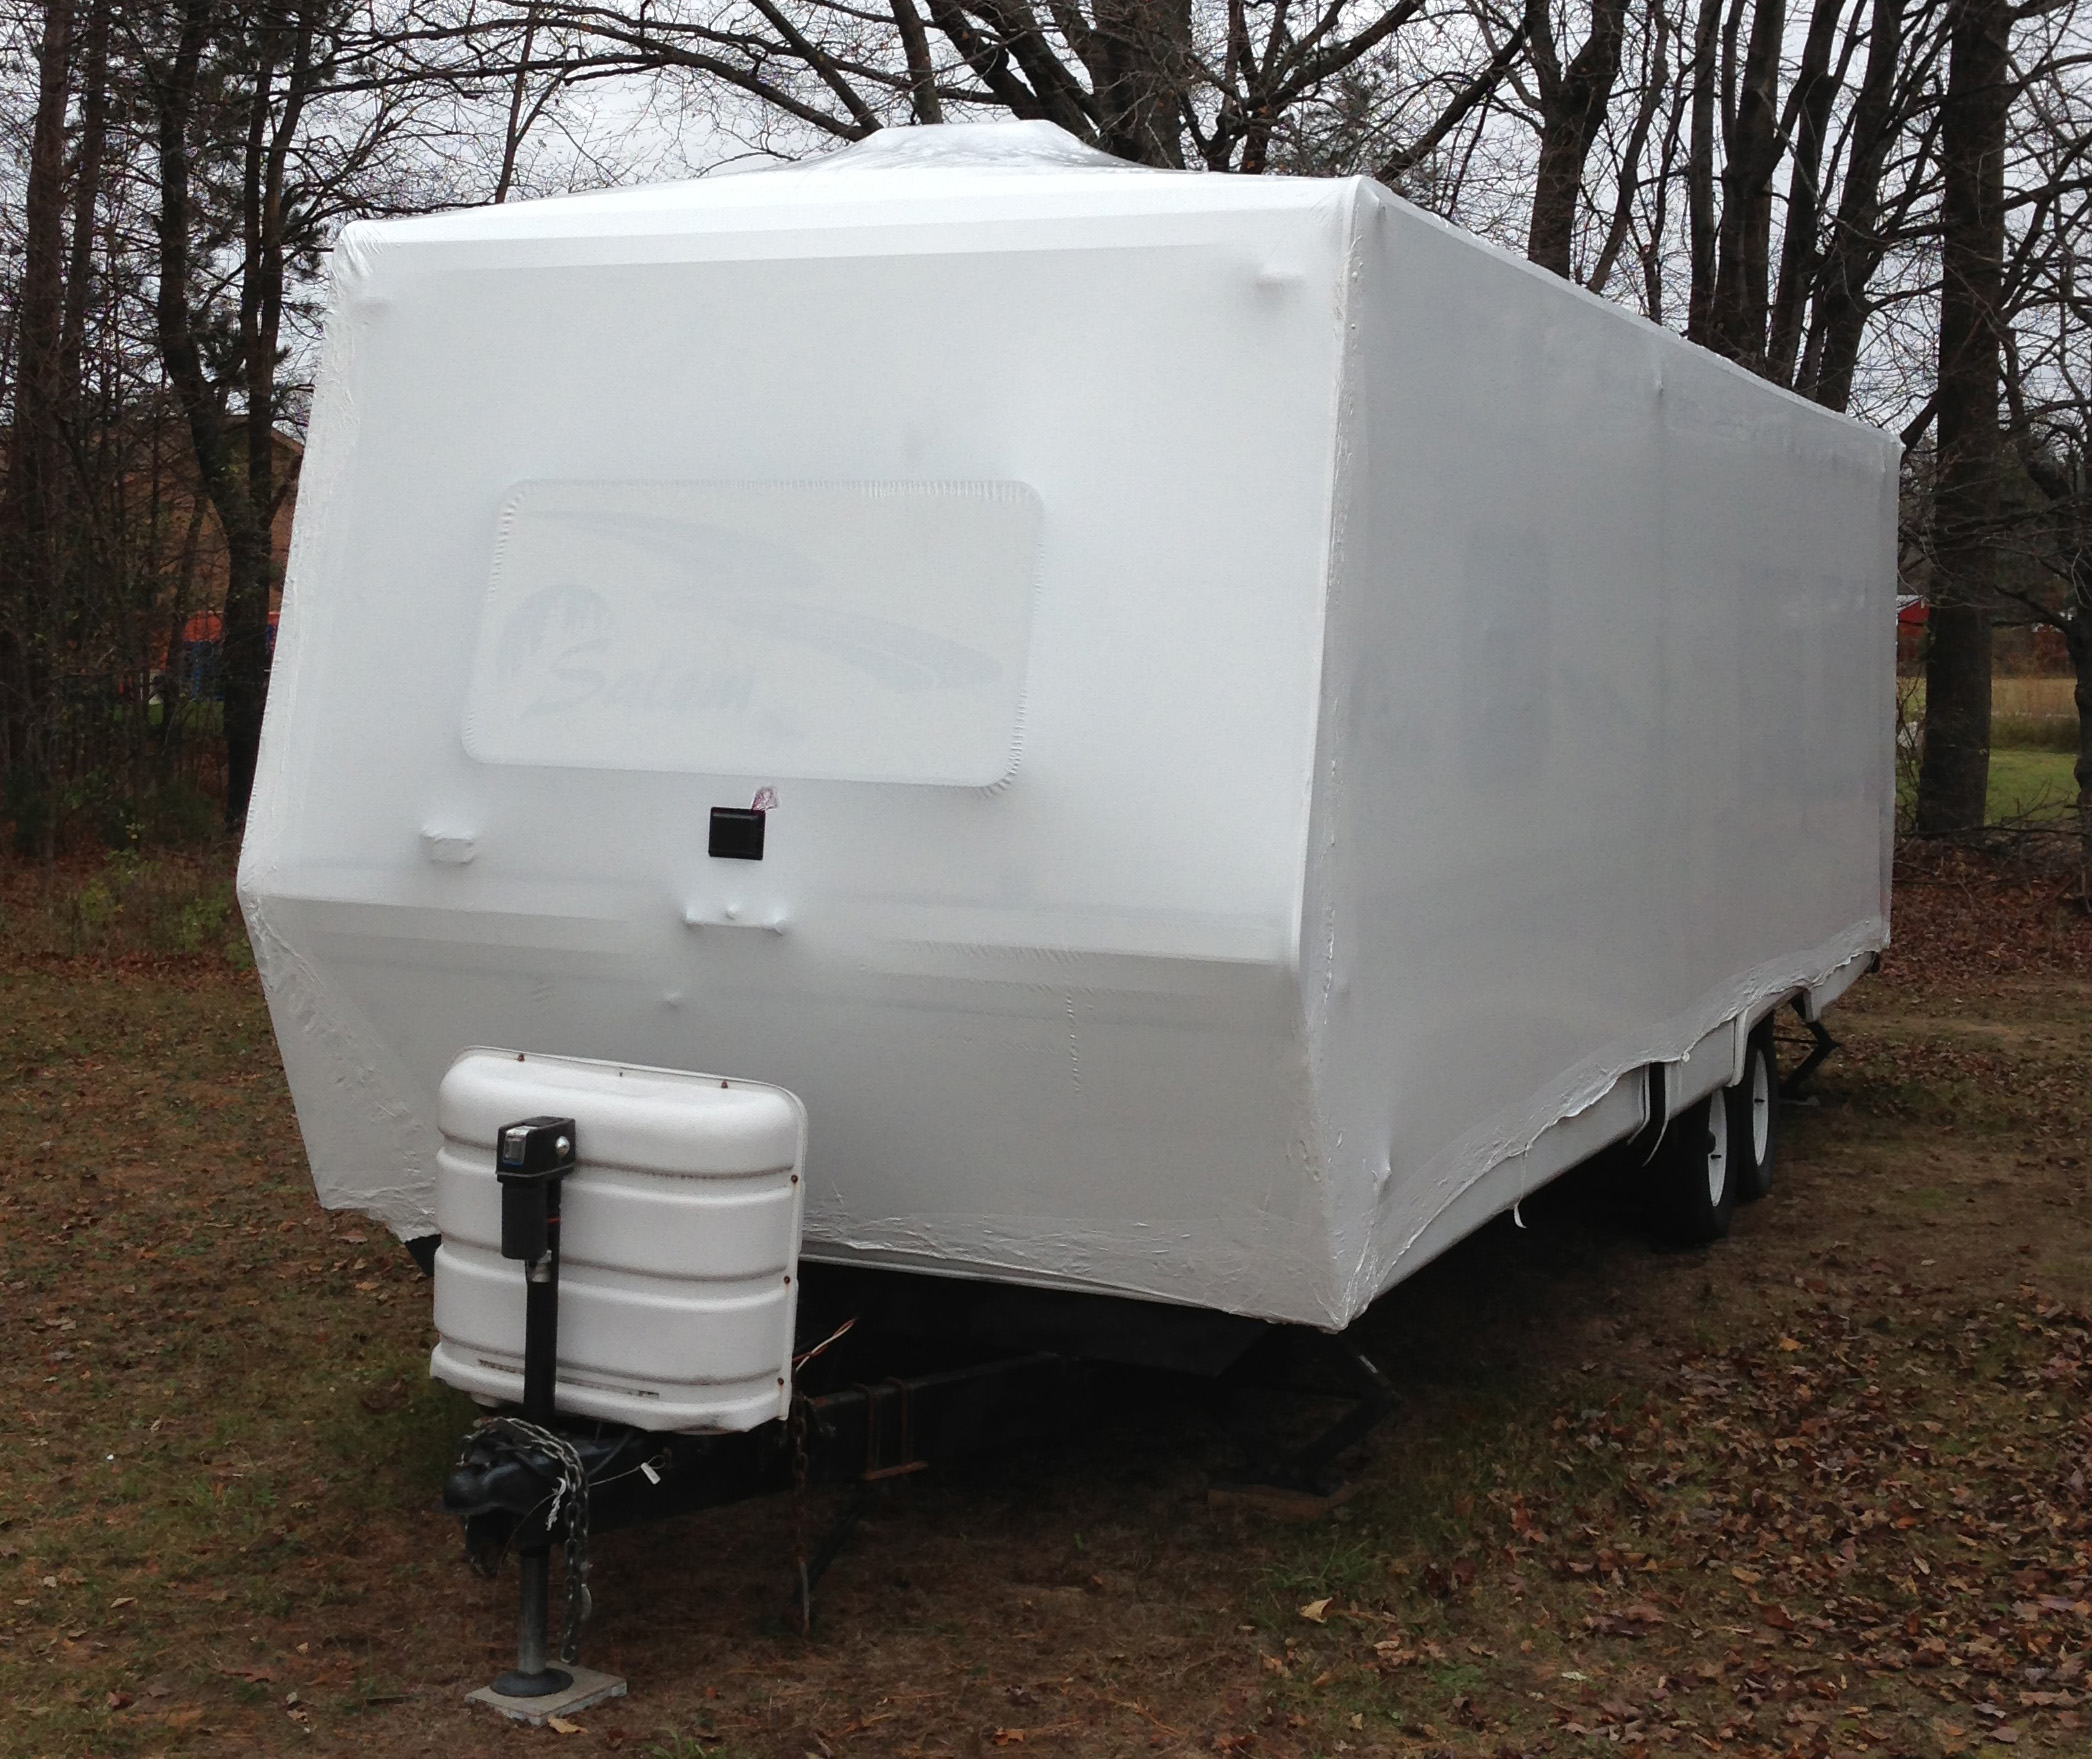 Traditional Rv Shrink Wrapping Kit For 10 Ft Trailers Up